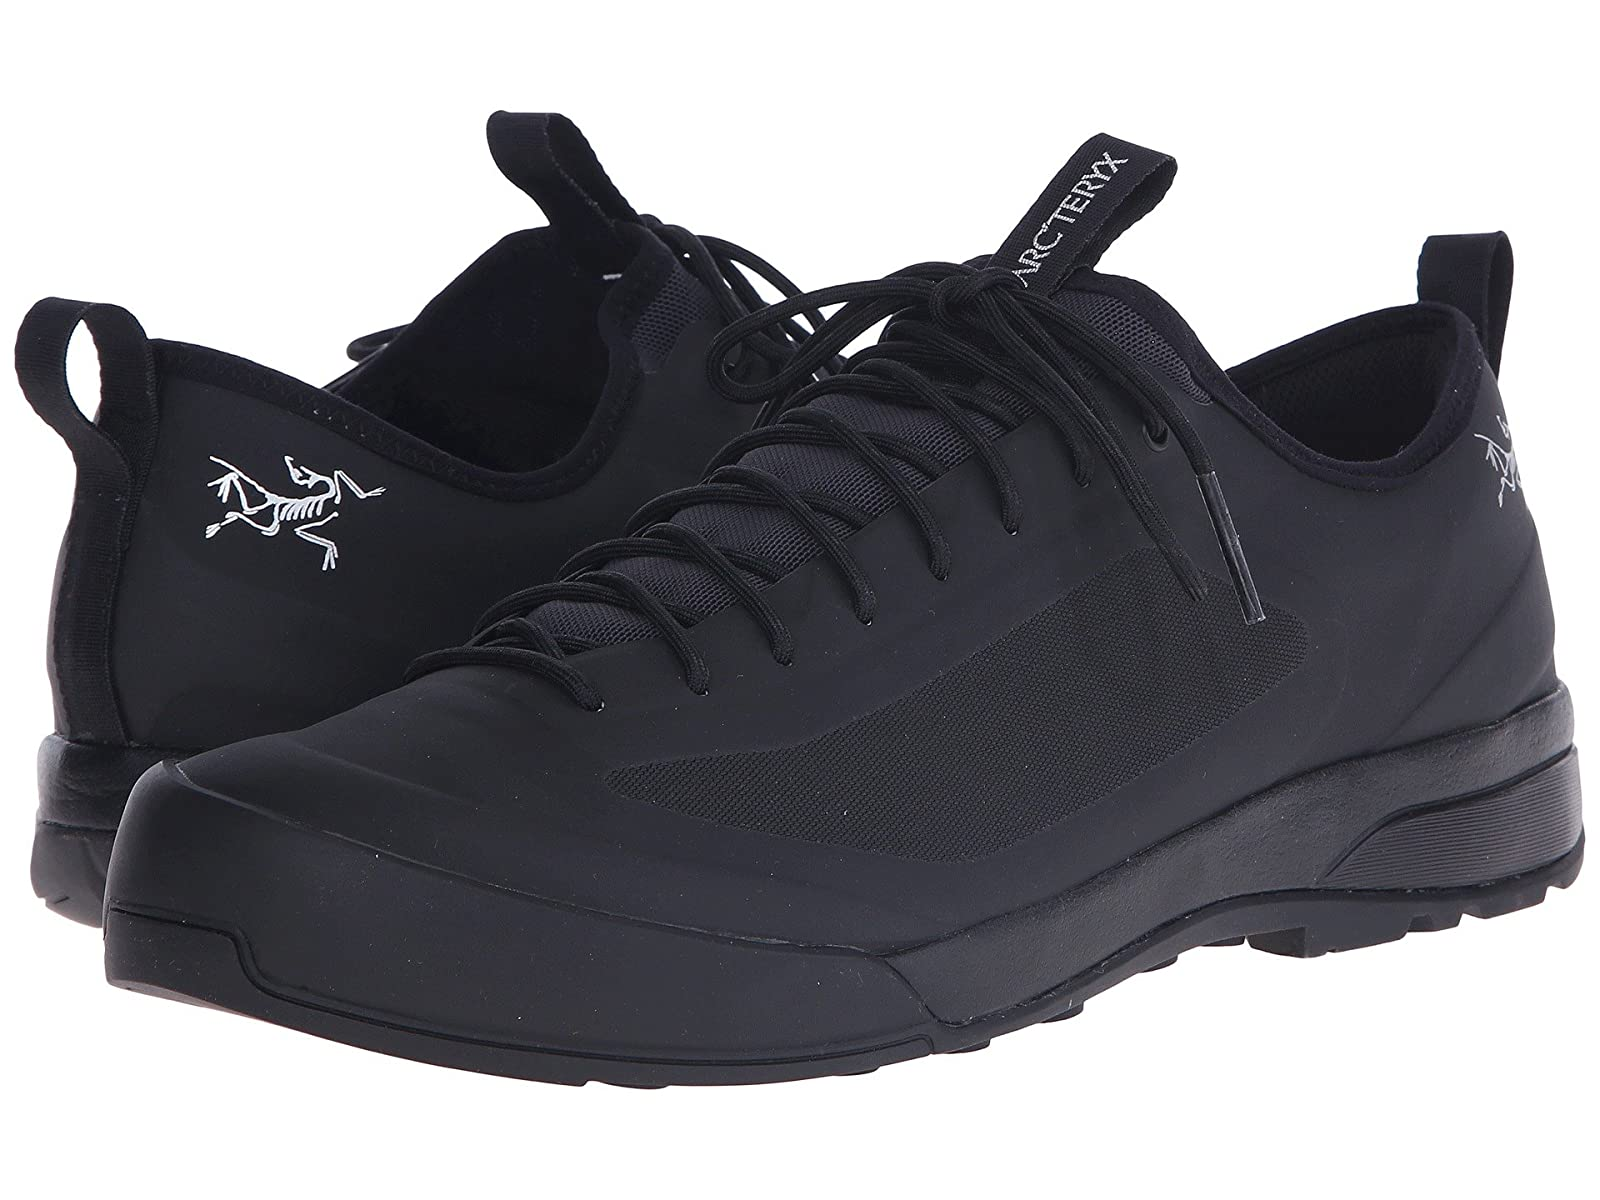 Arc'teryx Acrux SL Approach ShoeAtmospheric grades have affordable shoes